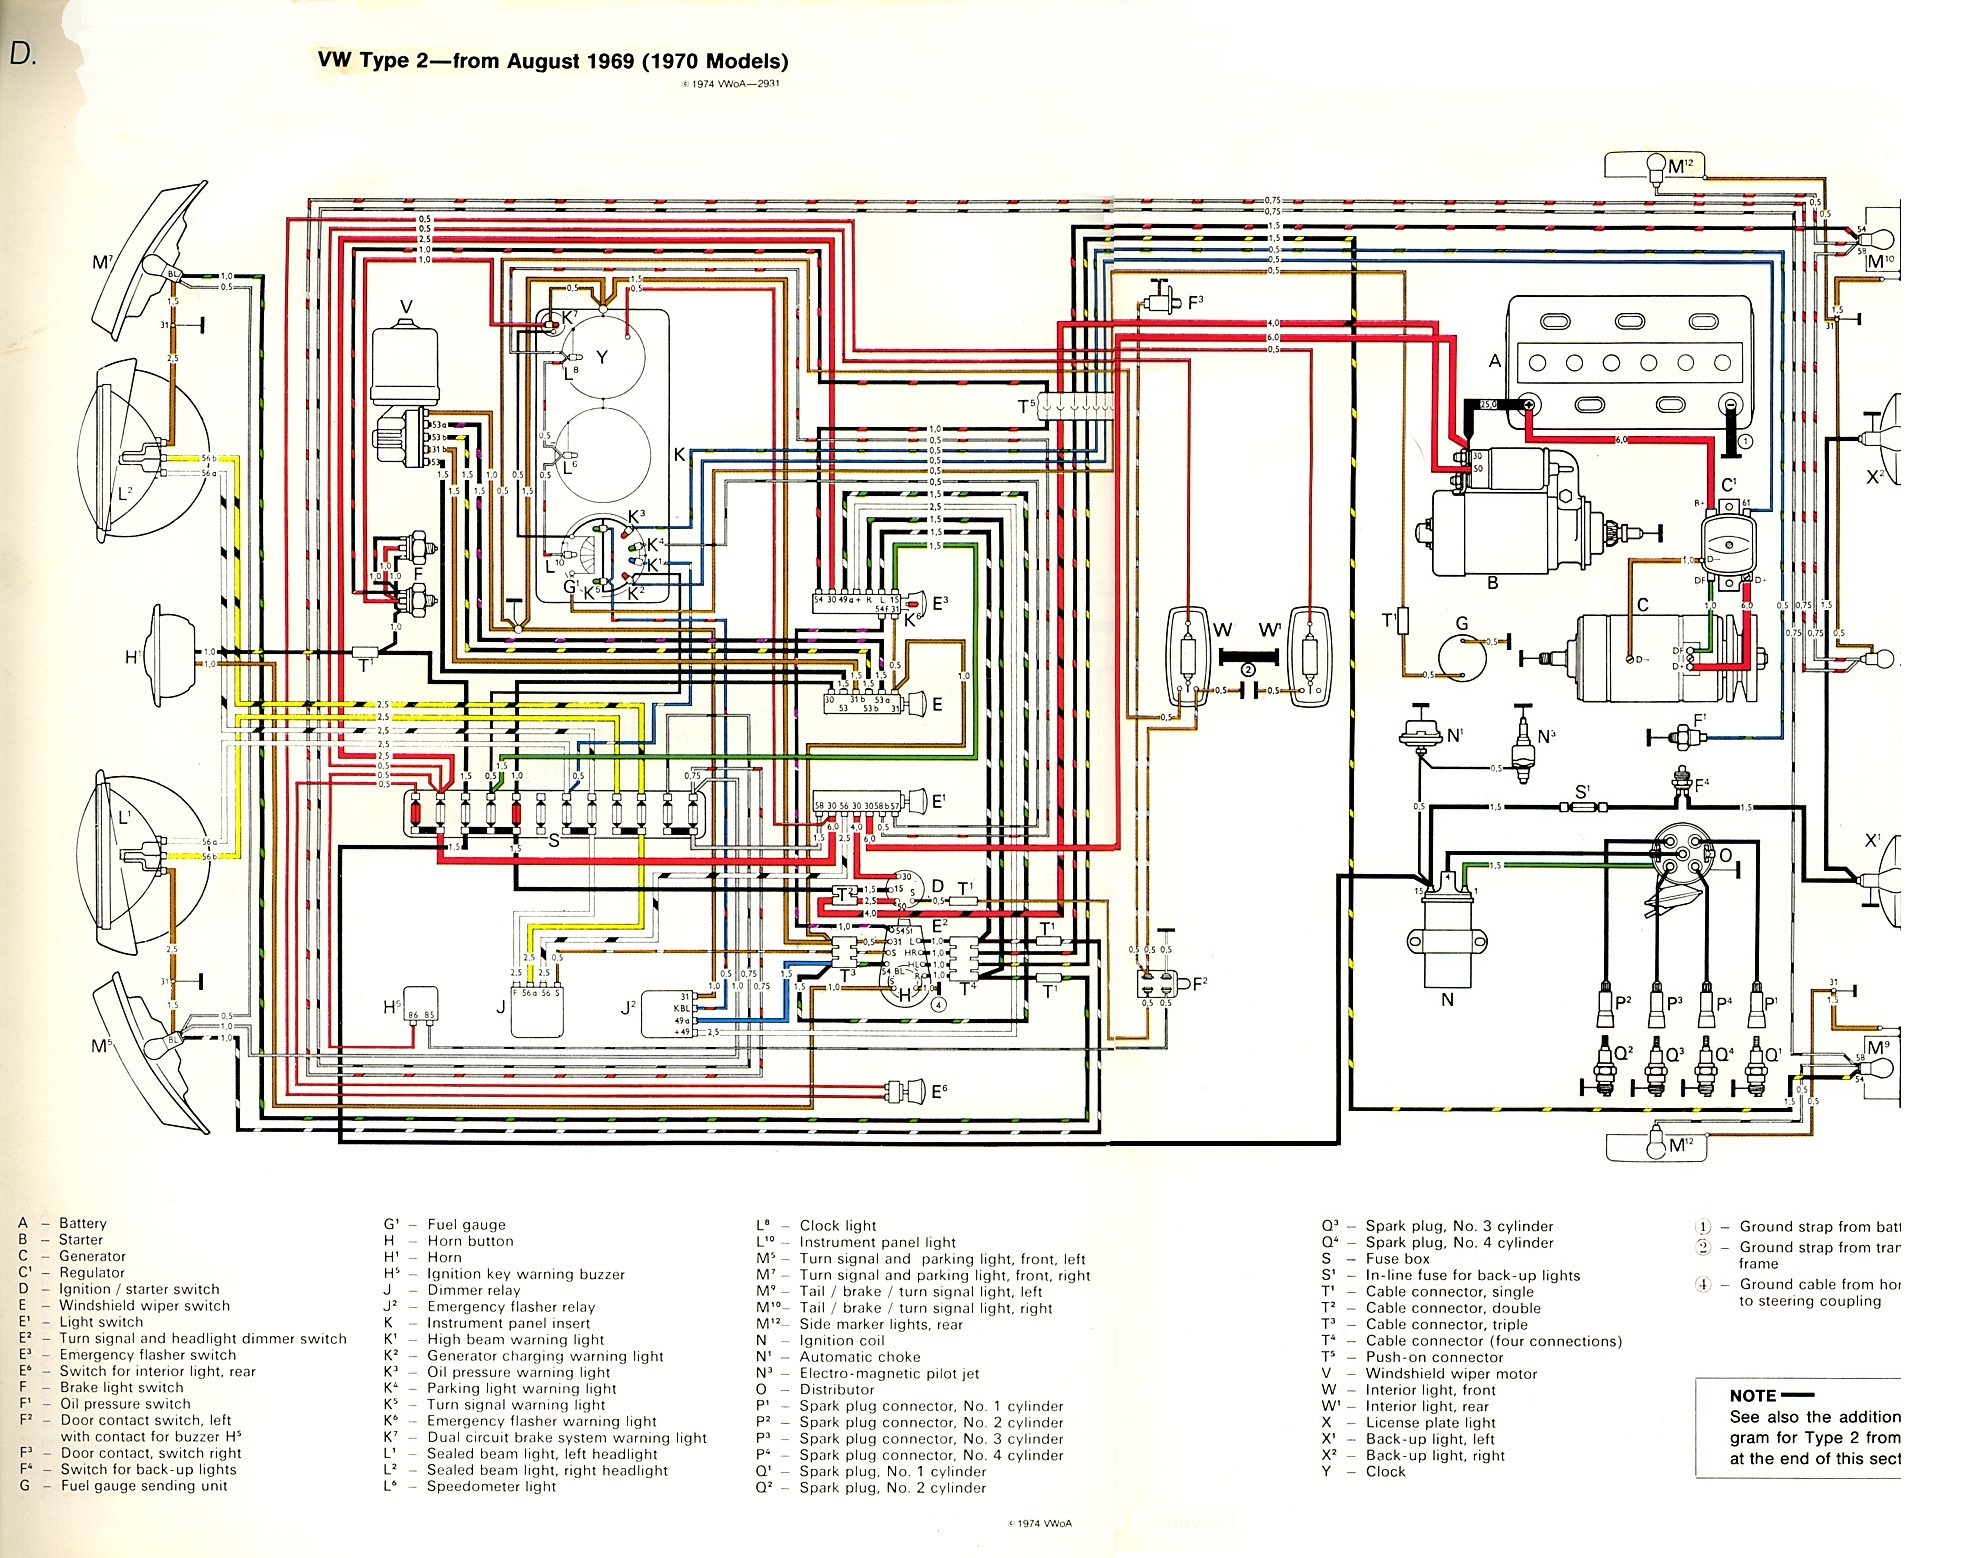 hight resolution of 1969 chevy c10 fuse box diagram auto electrical wiring diagram rh psu edu co fr sanjaydutt